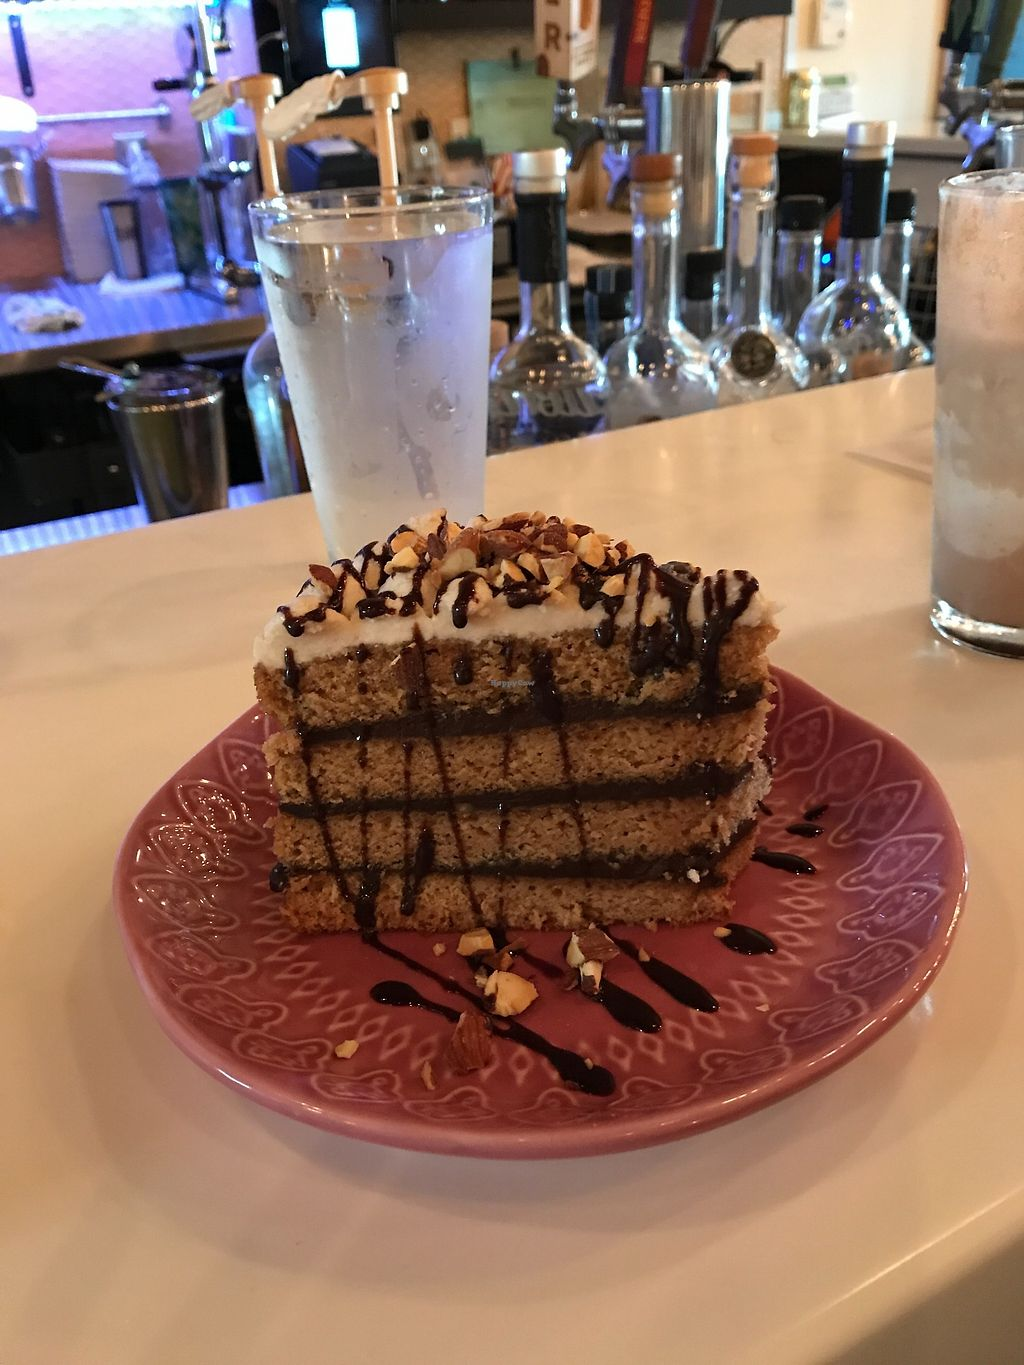 """Photo of Chive Kitchen  by <a href=""""/members/profile/Chicletreat"""">Chicletreat</a> <br/>Espresso Cake <br/> July 12, 2017  - <a href='/contact/abuse/image/68260/279615'>Report</a>"""